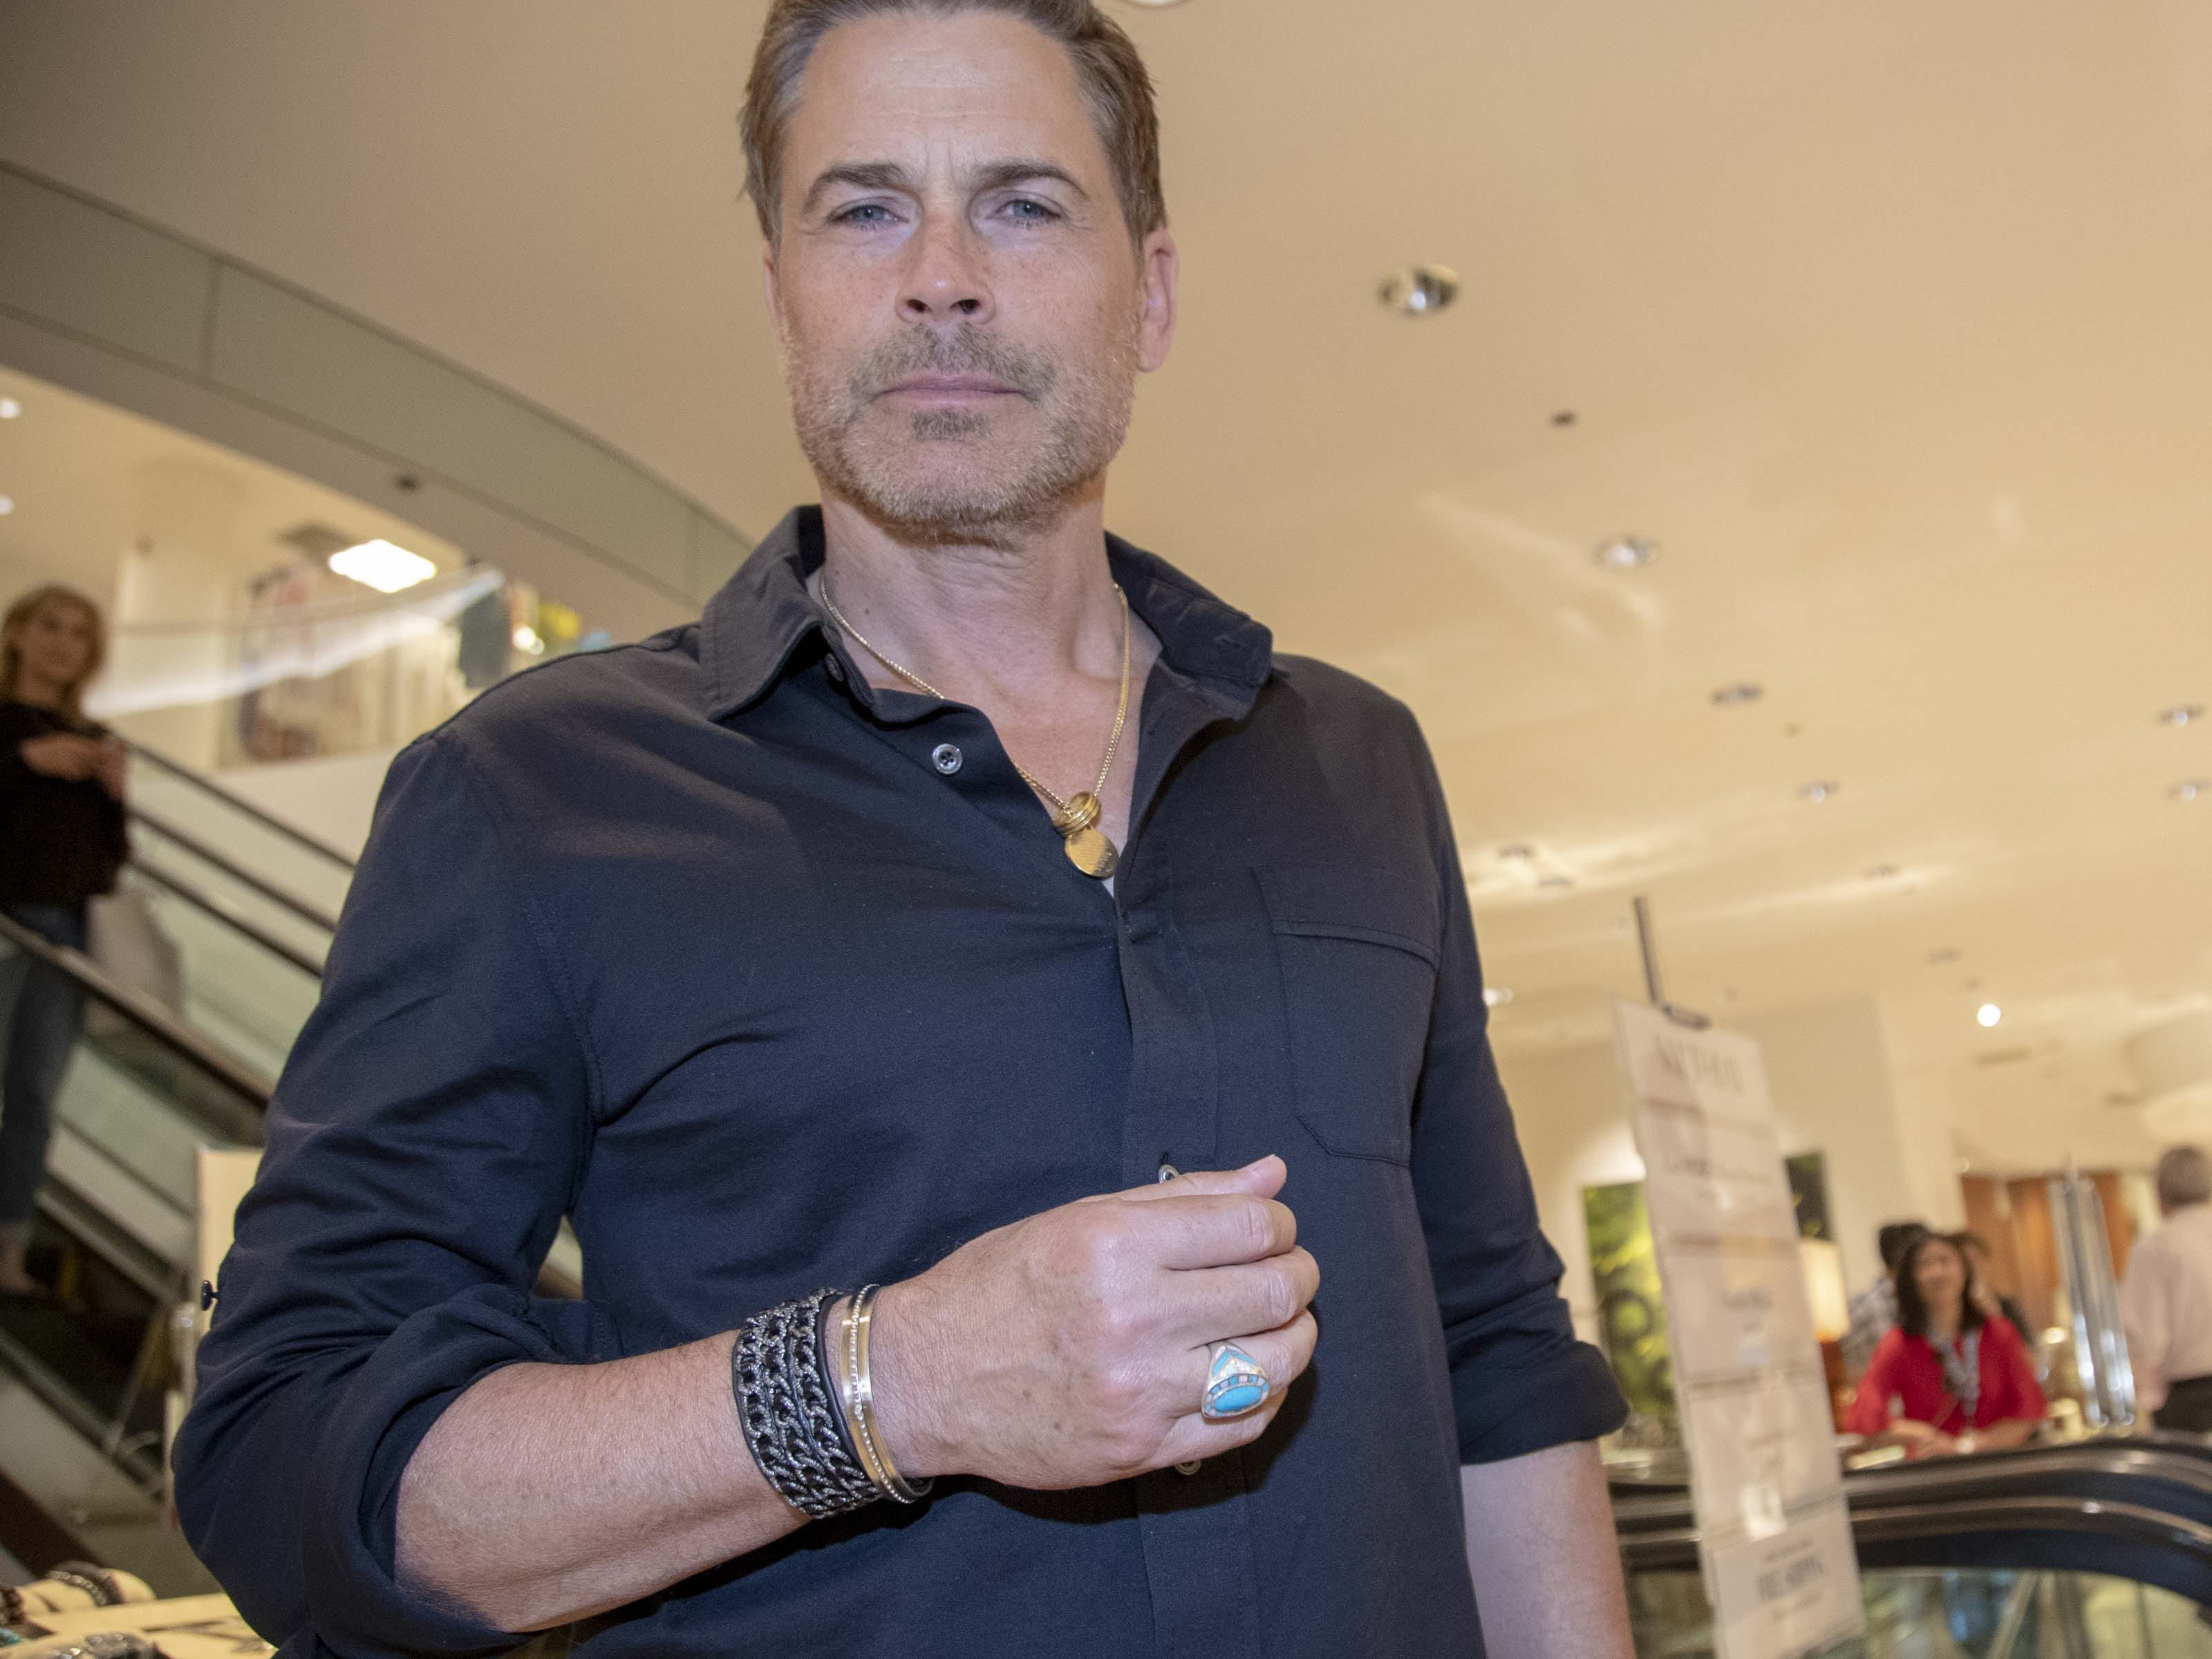 Actor Rob Lowe wears a ring designed by his wife Sheryl Lowe while introducing the couple's new men's jewelry collection at Scottsdale Fashion Square on March 28, 2019.